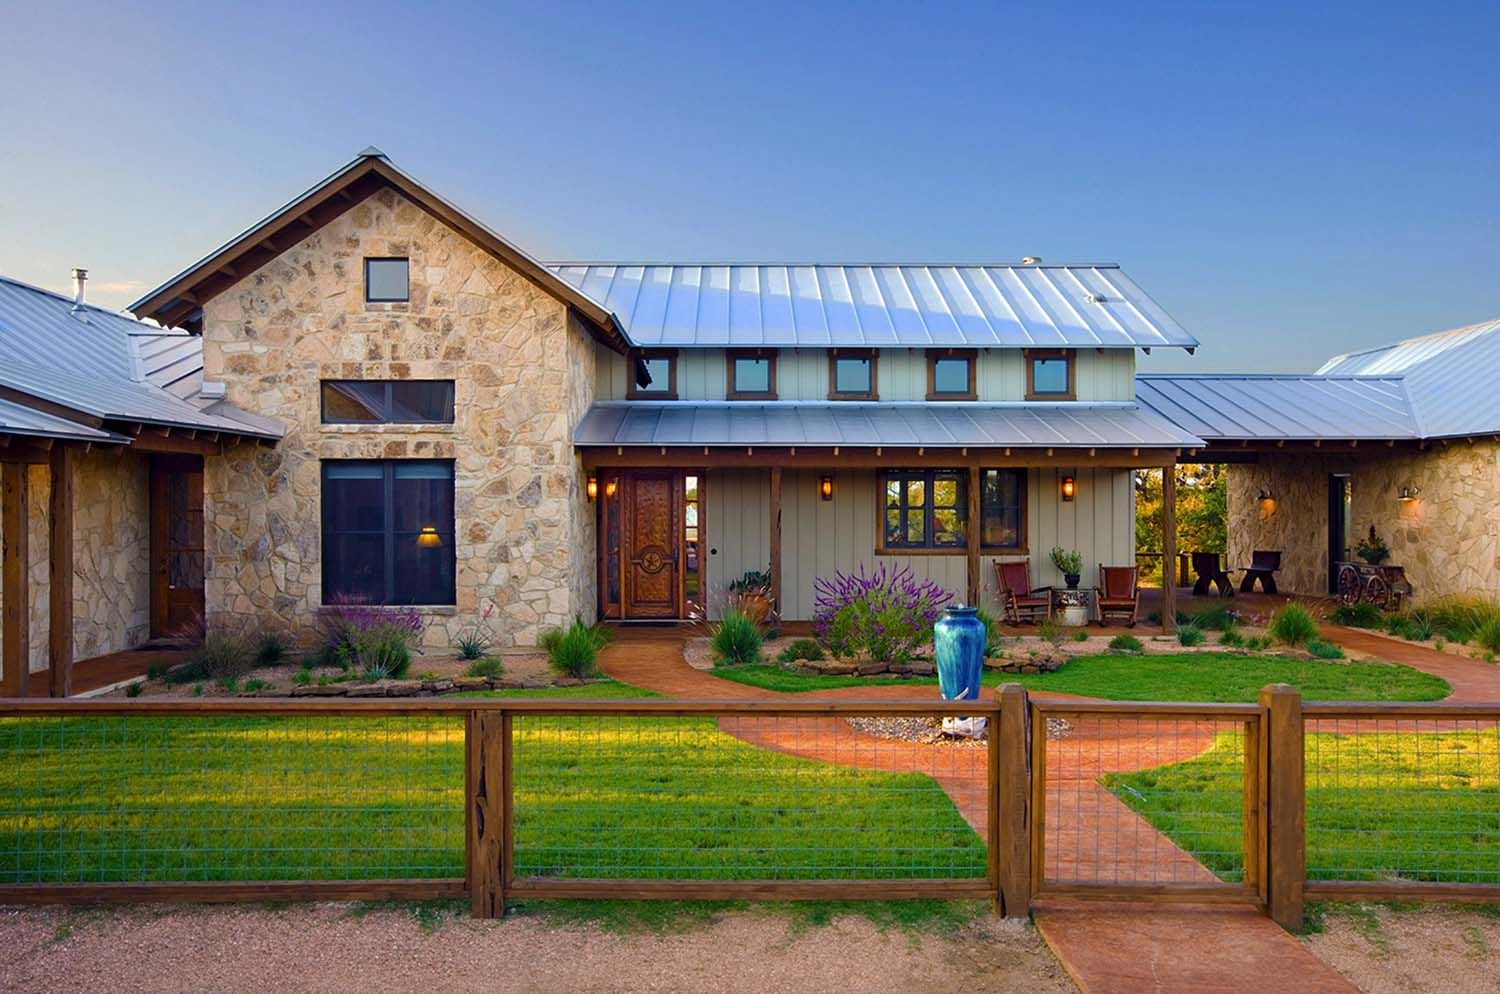 Rustic Ranch House Designed For Family Gatherings In Texas Ranch House Designs Metal Building Homes Hill Country Homes